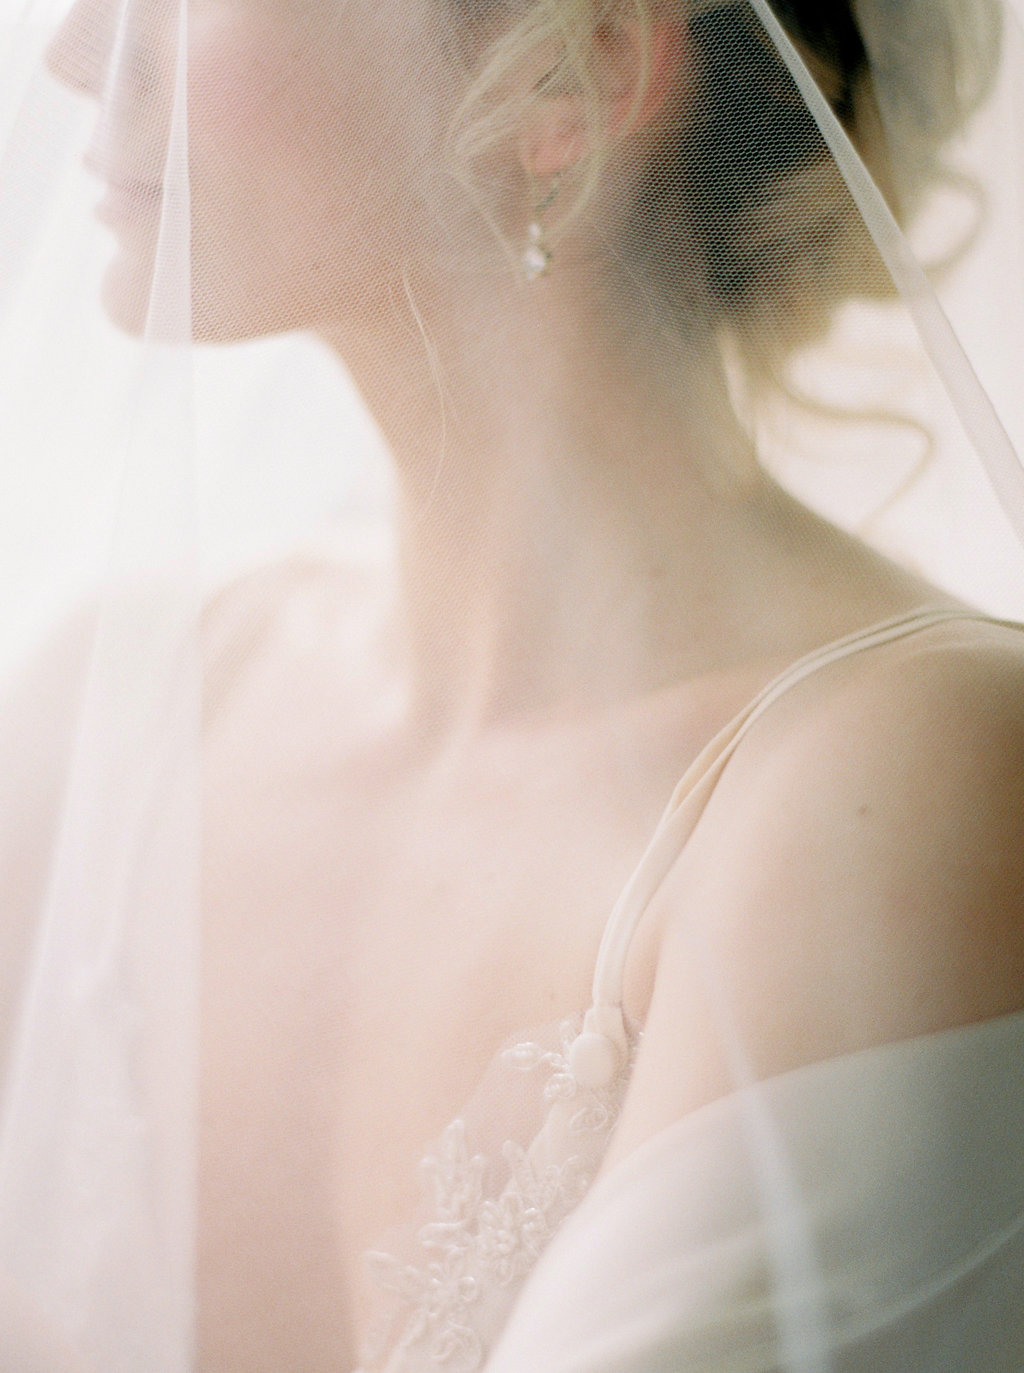 Bridal makeup and hair plus accessories by victoria fergusson at Hotel Endsleigh (57).jpg